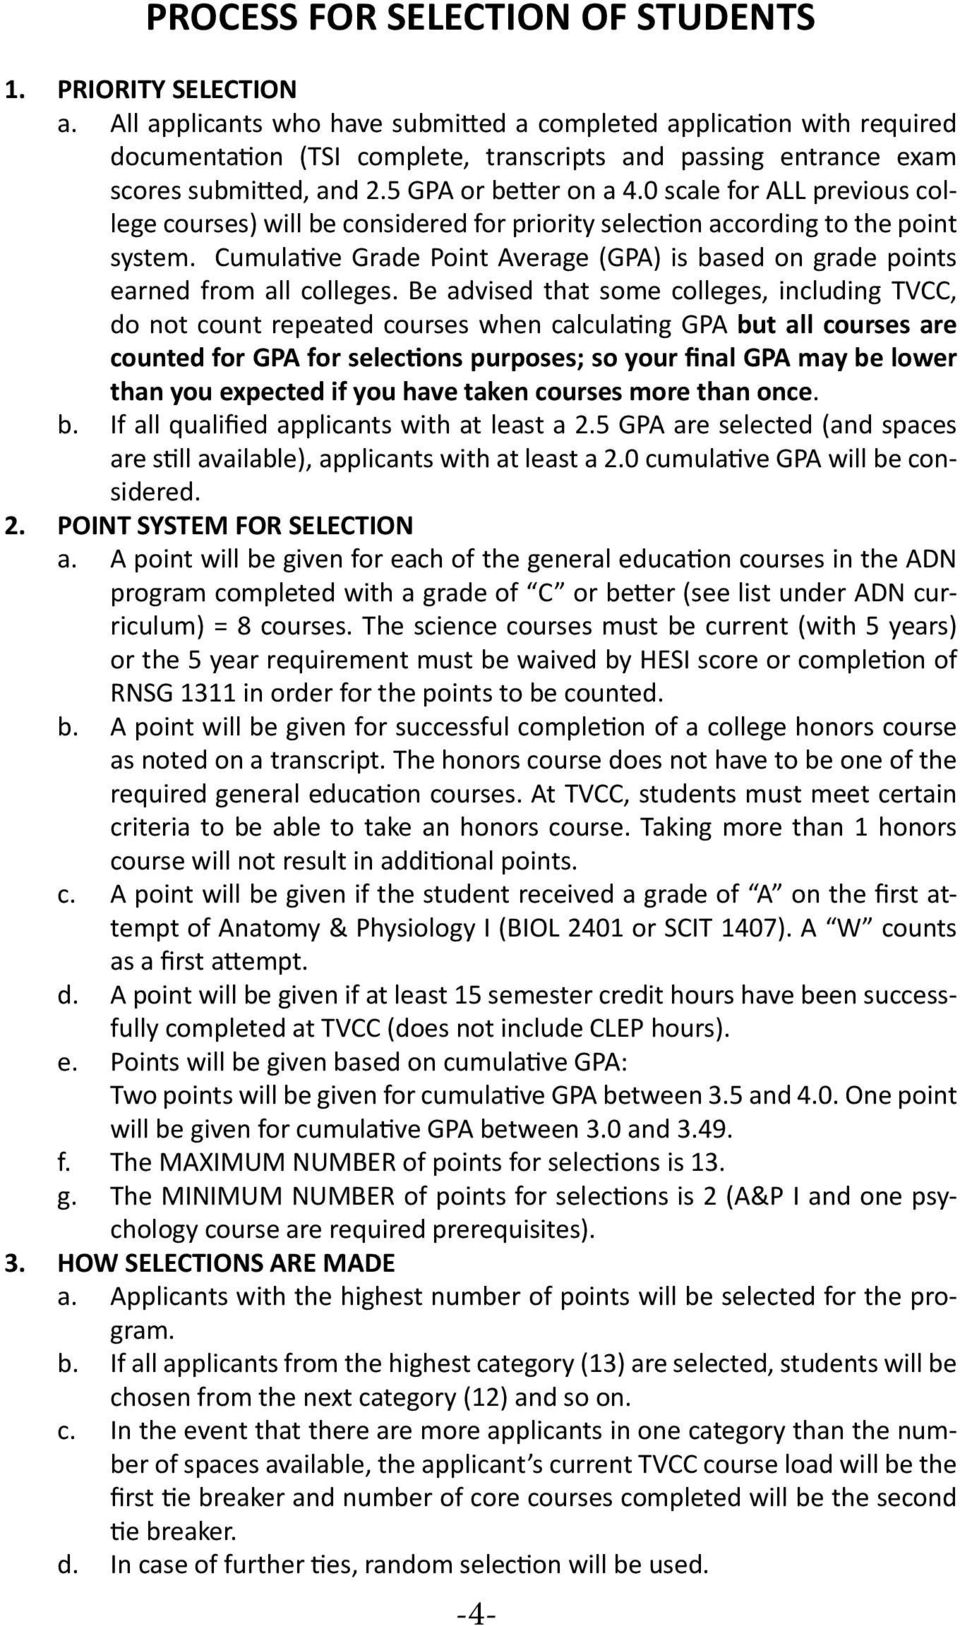 0 scale for ALL previous college courses) will be considered for priority selection according to the point system.